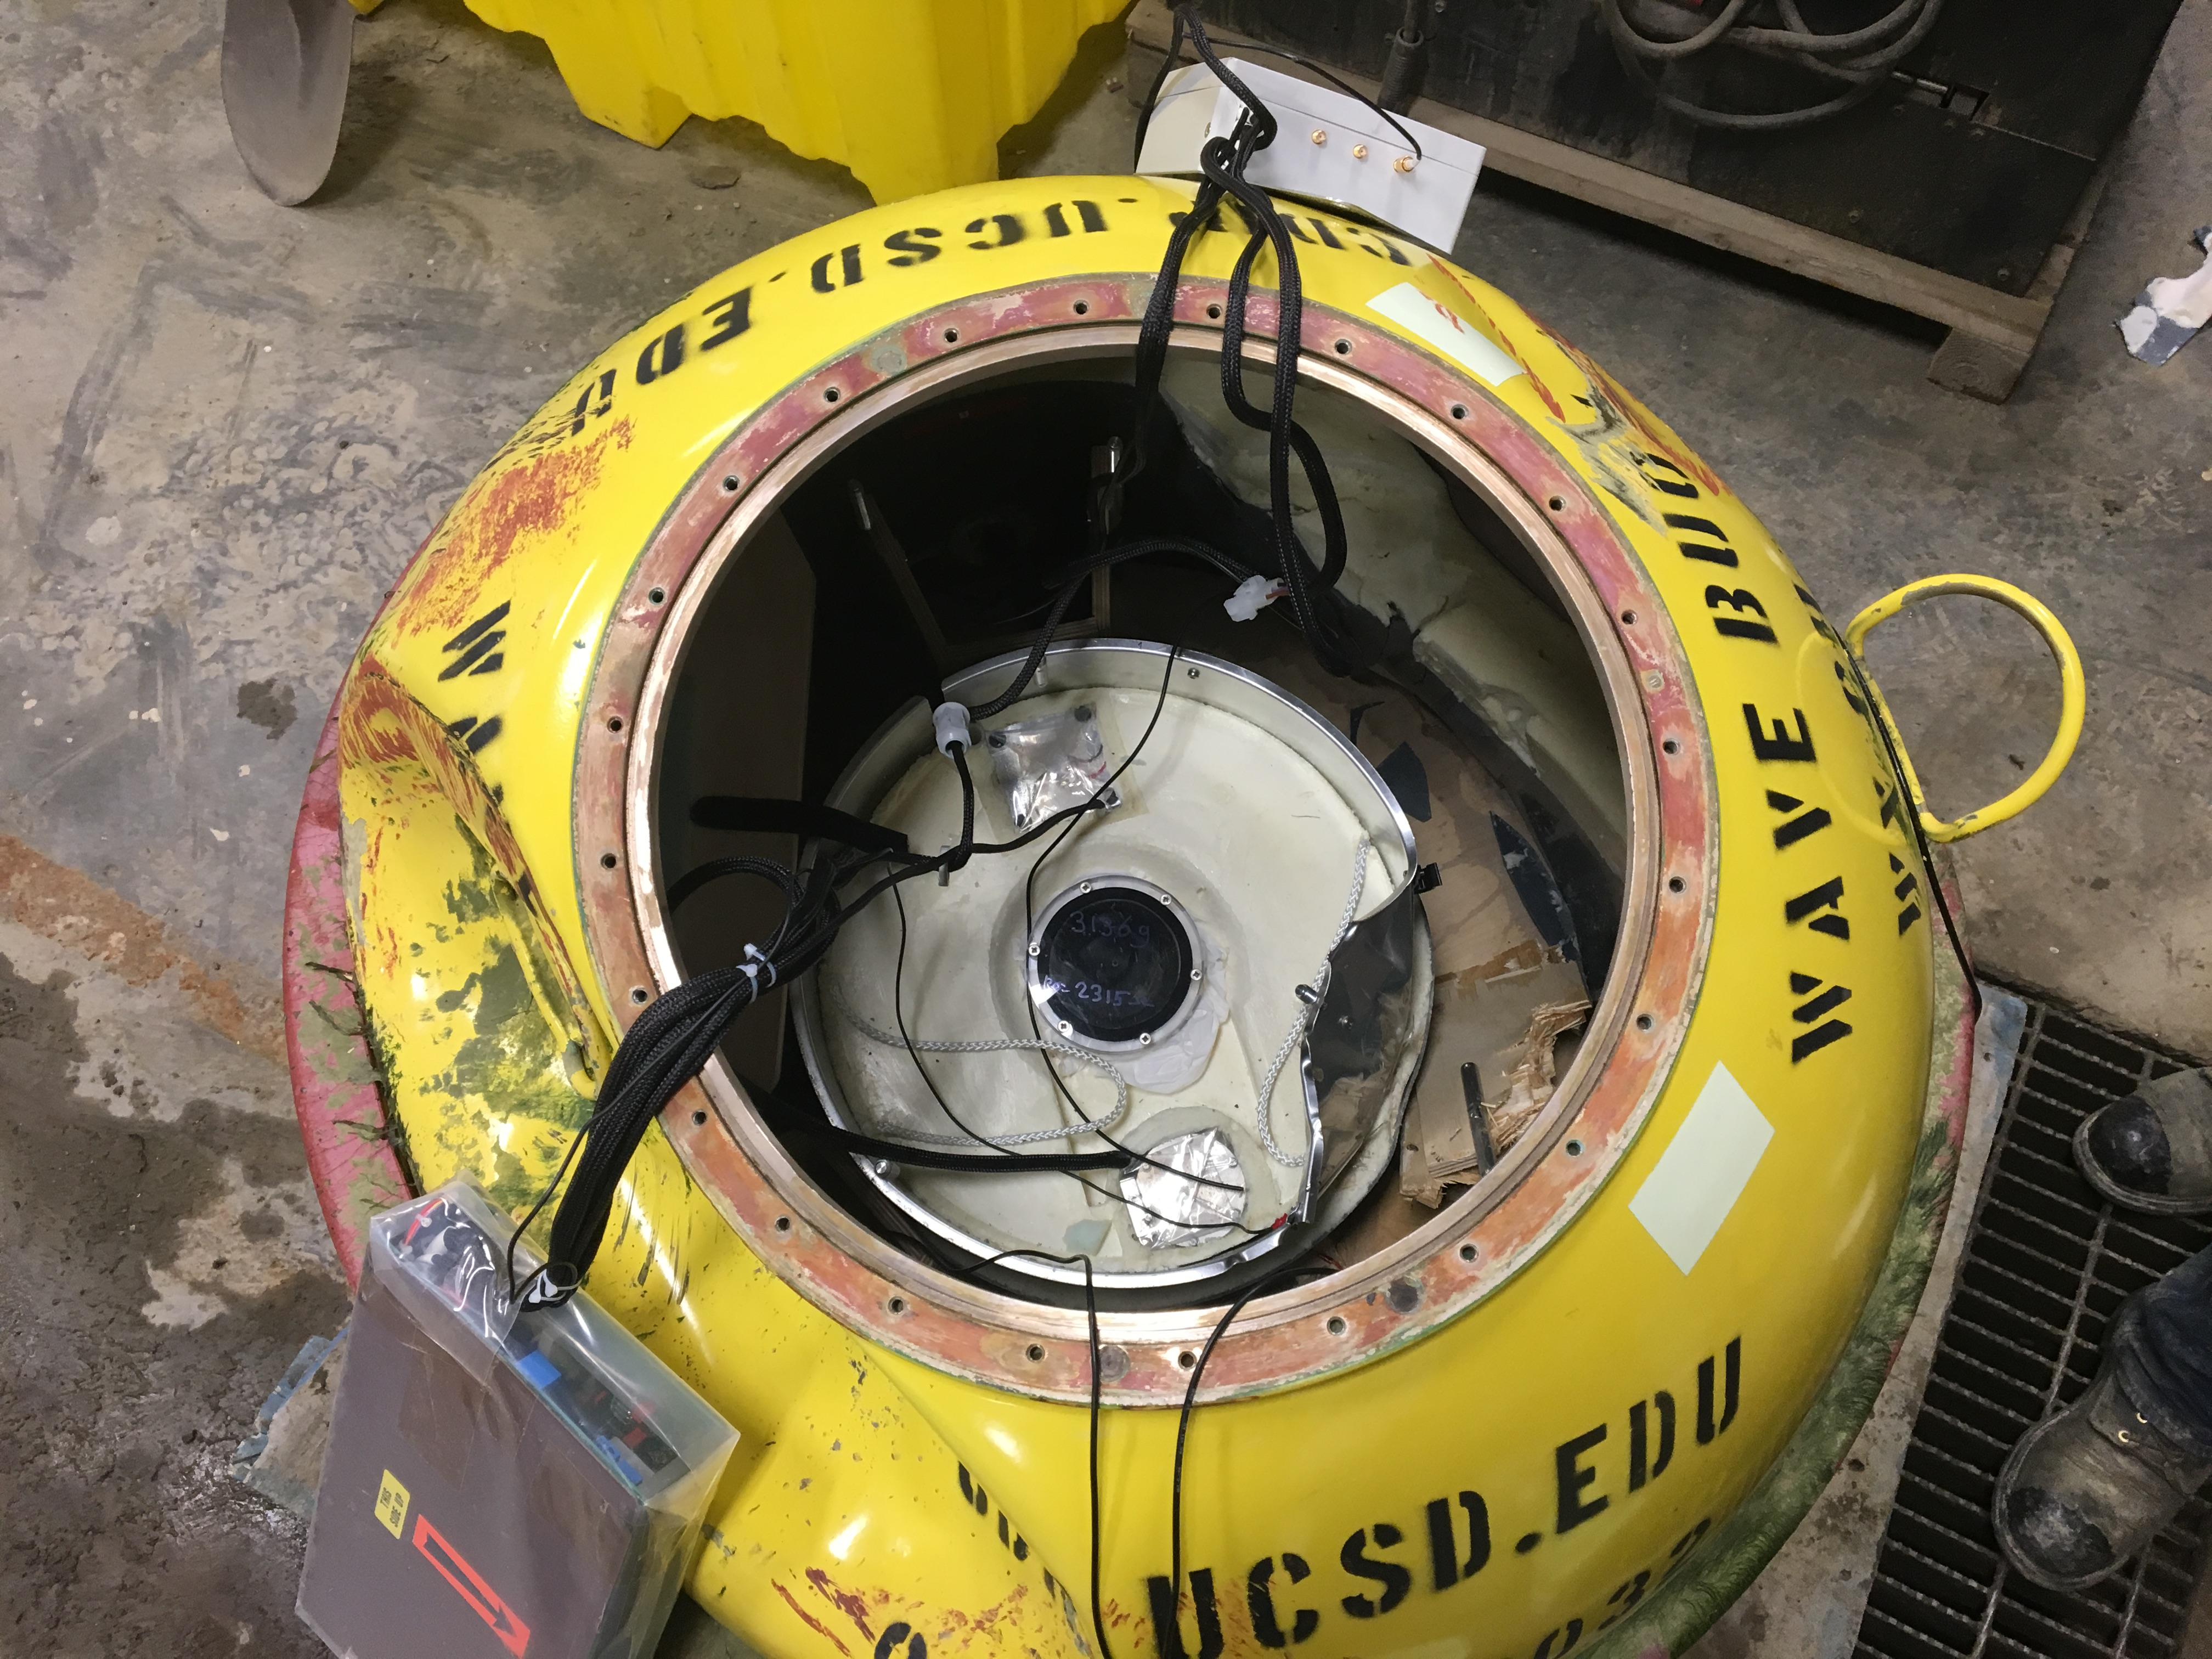 View into interior of damaged buoy without tophat